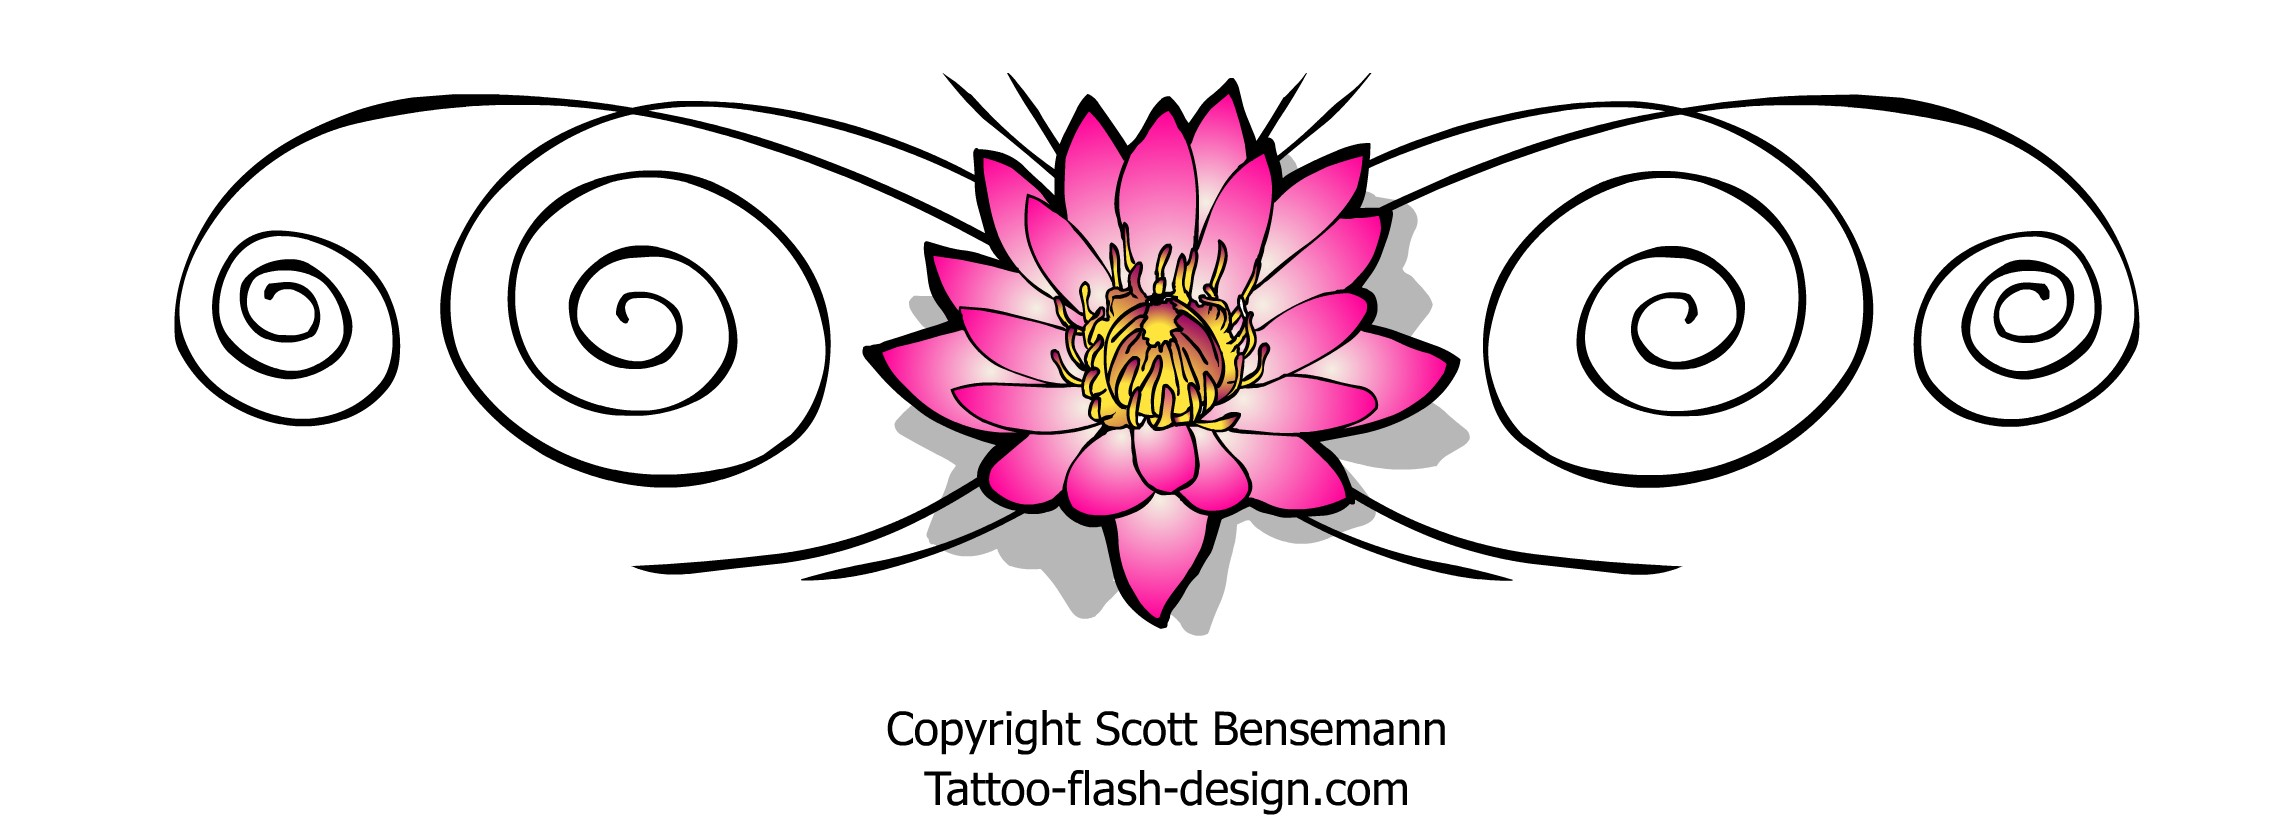 Pink tribal lotus flower tattoo design pink lotus flower tattoos design izmirmasajfo